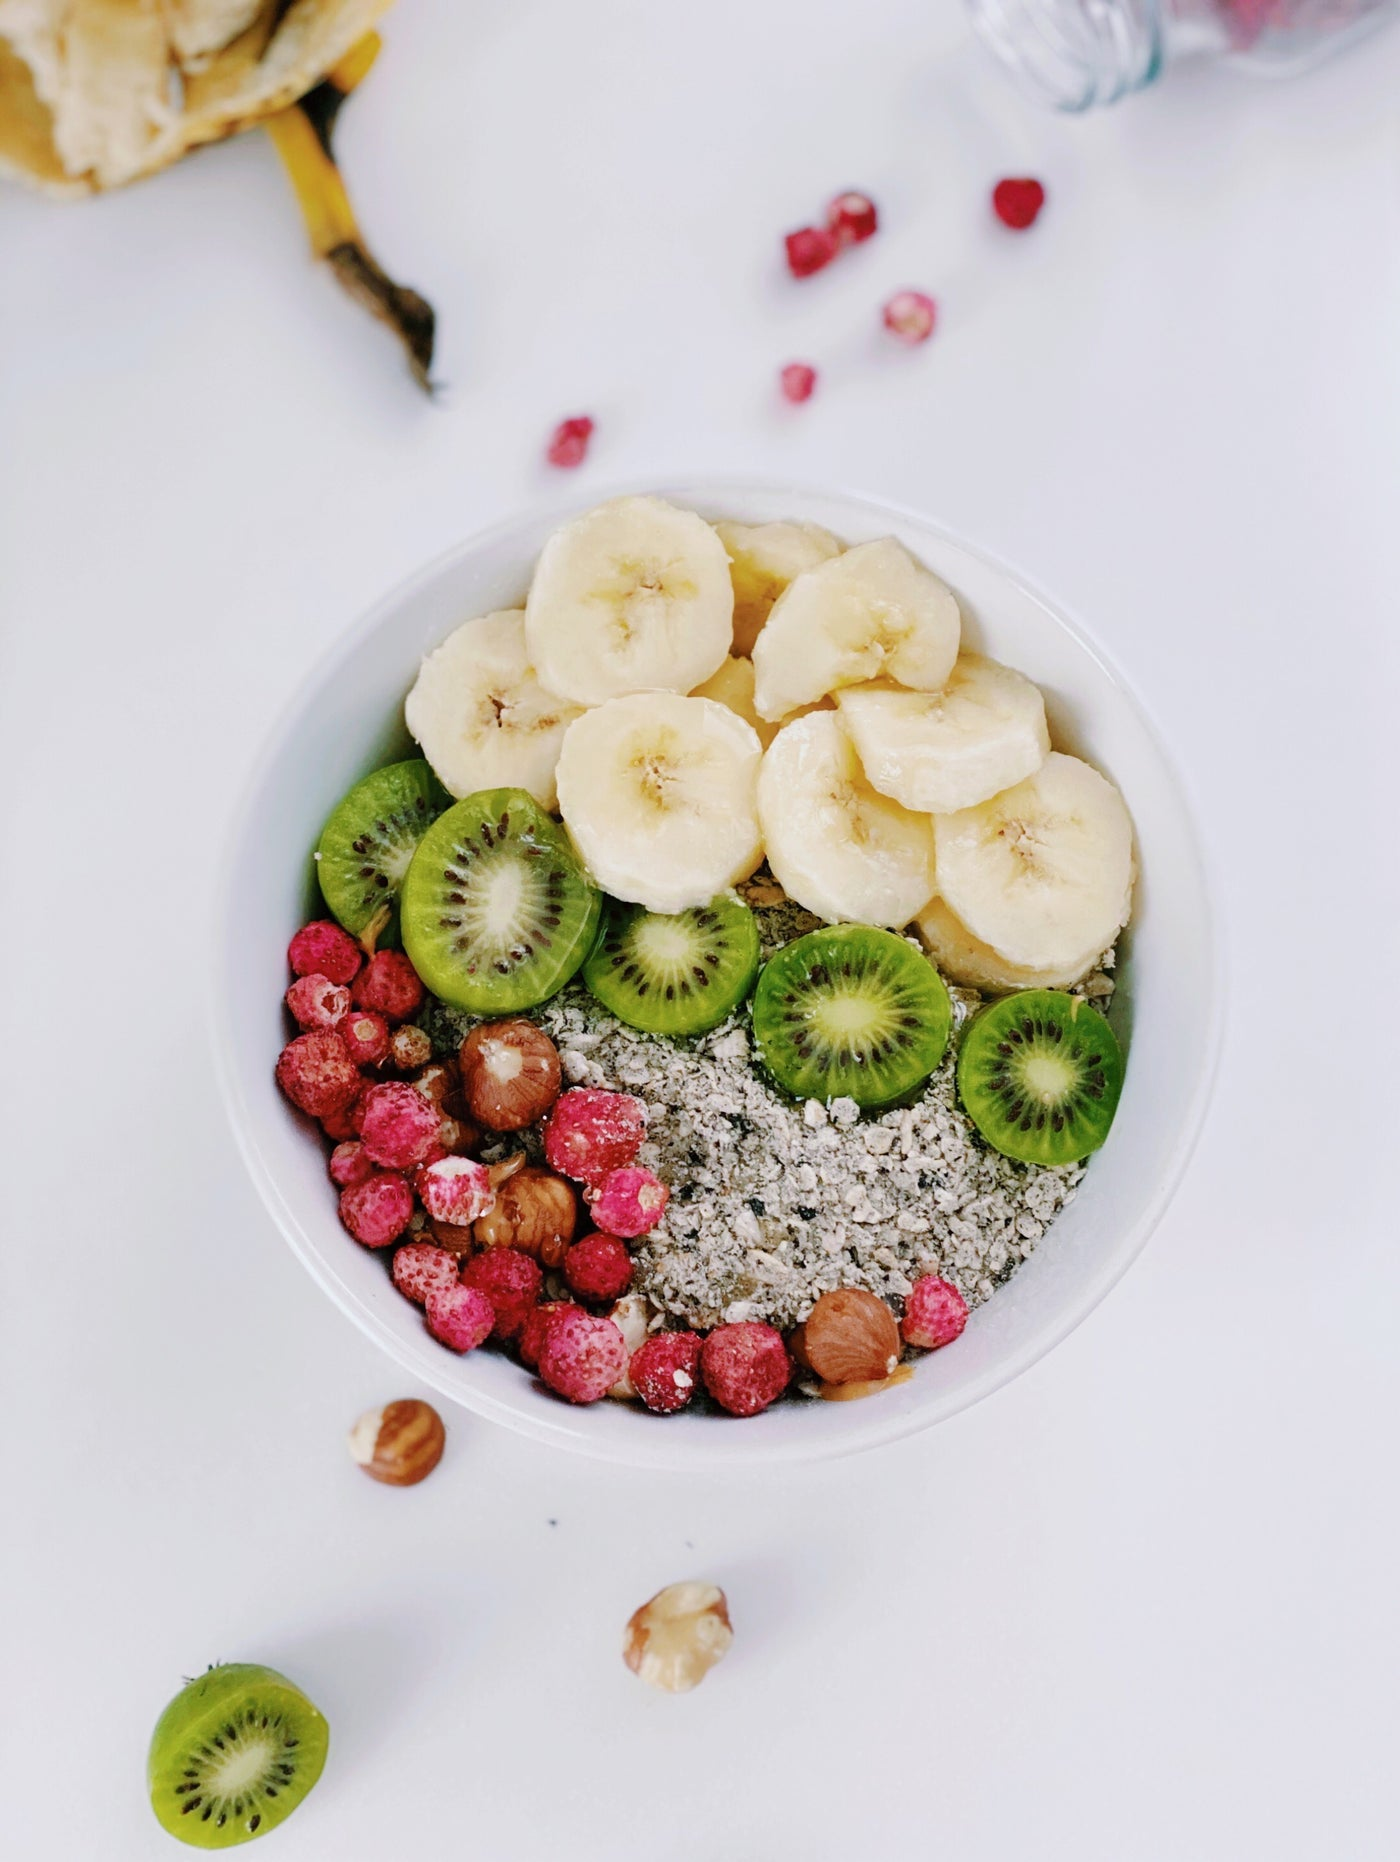 Grain-free Vanilla Breakfast Bowl